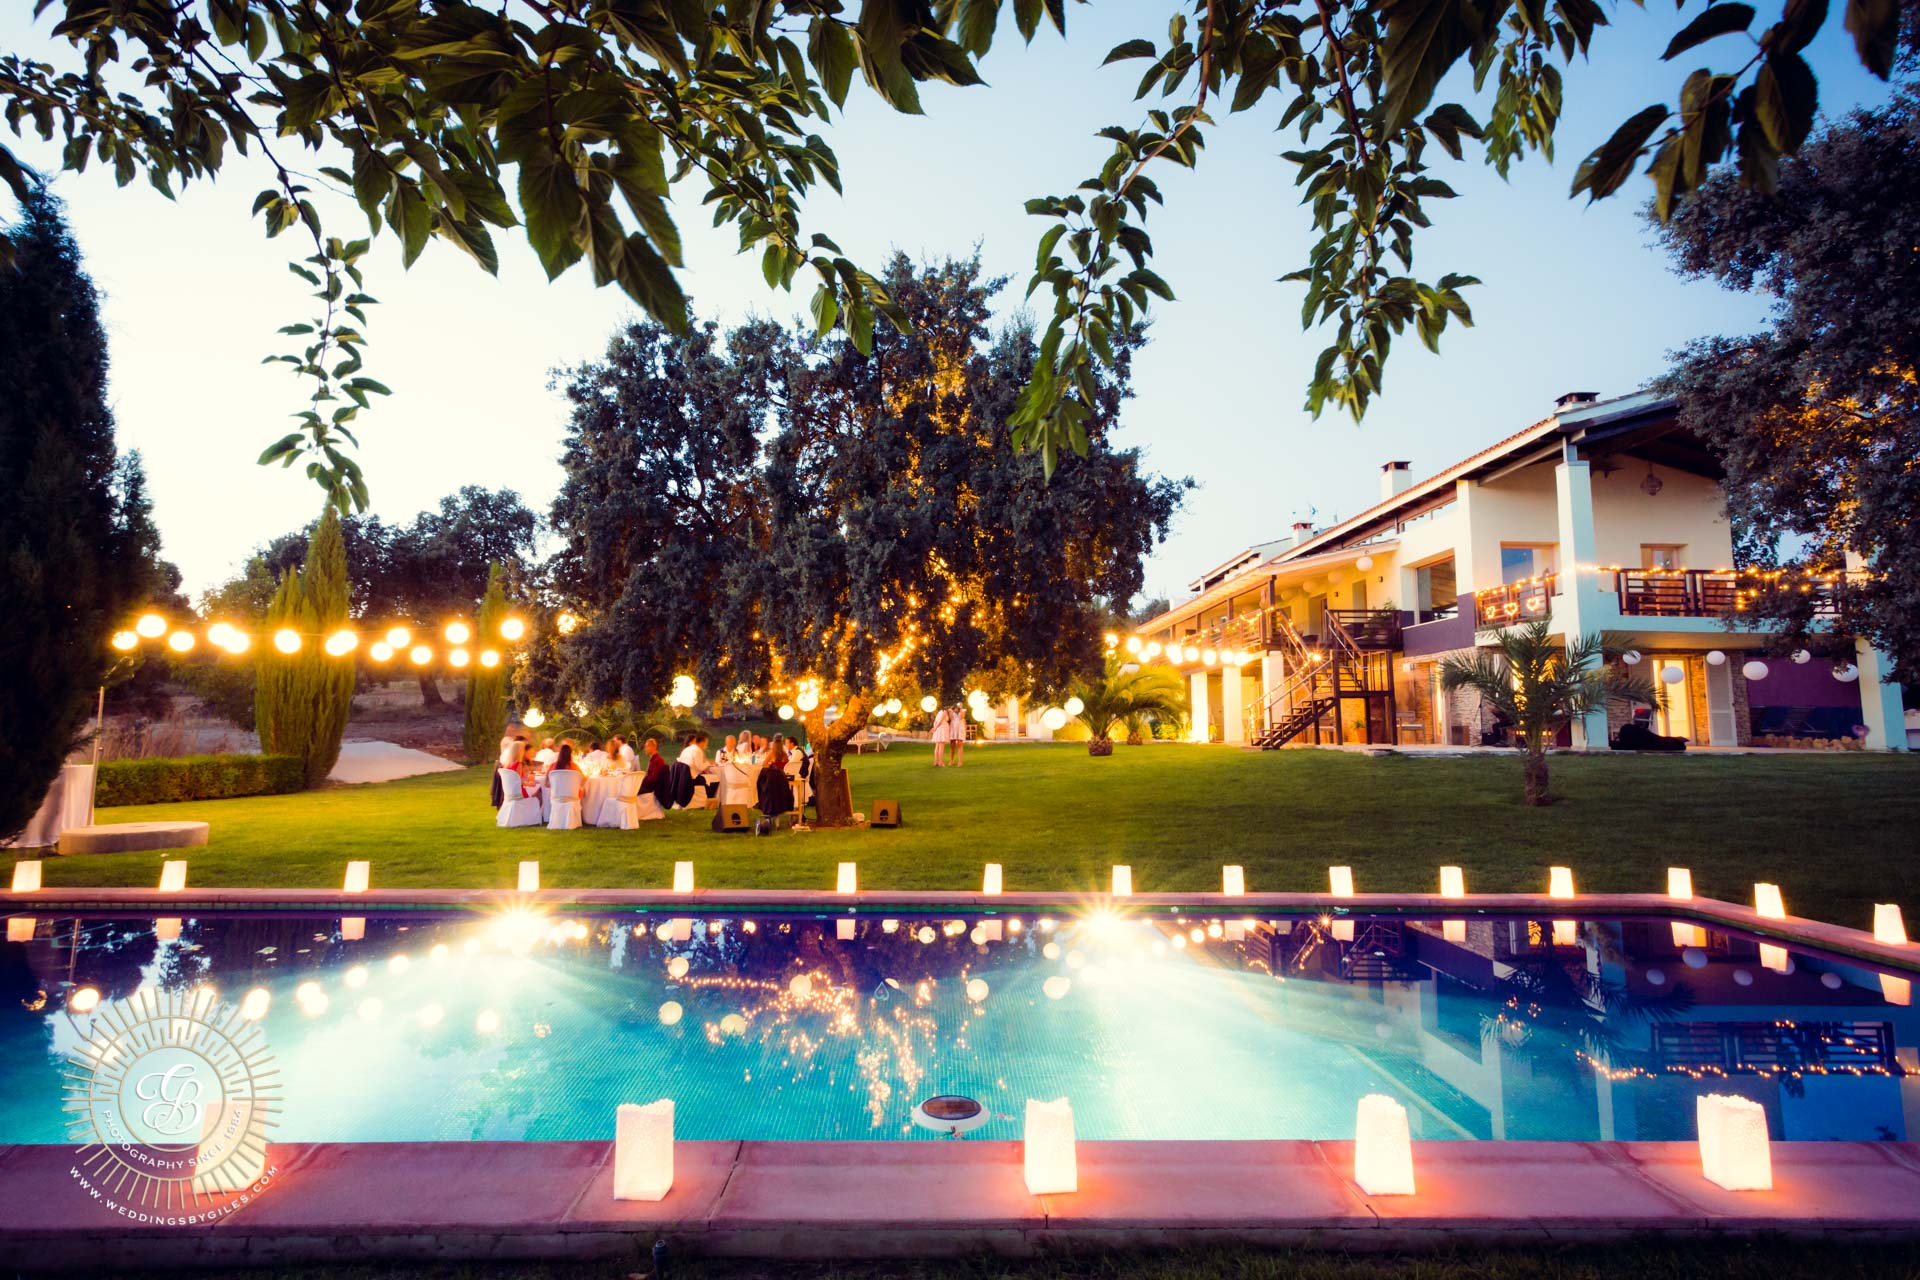 Pool side garden wedding in Andalucia spain